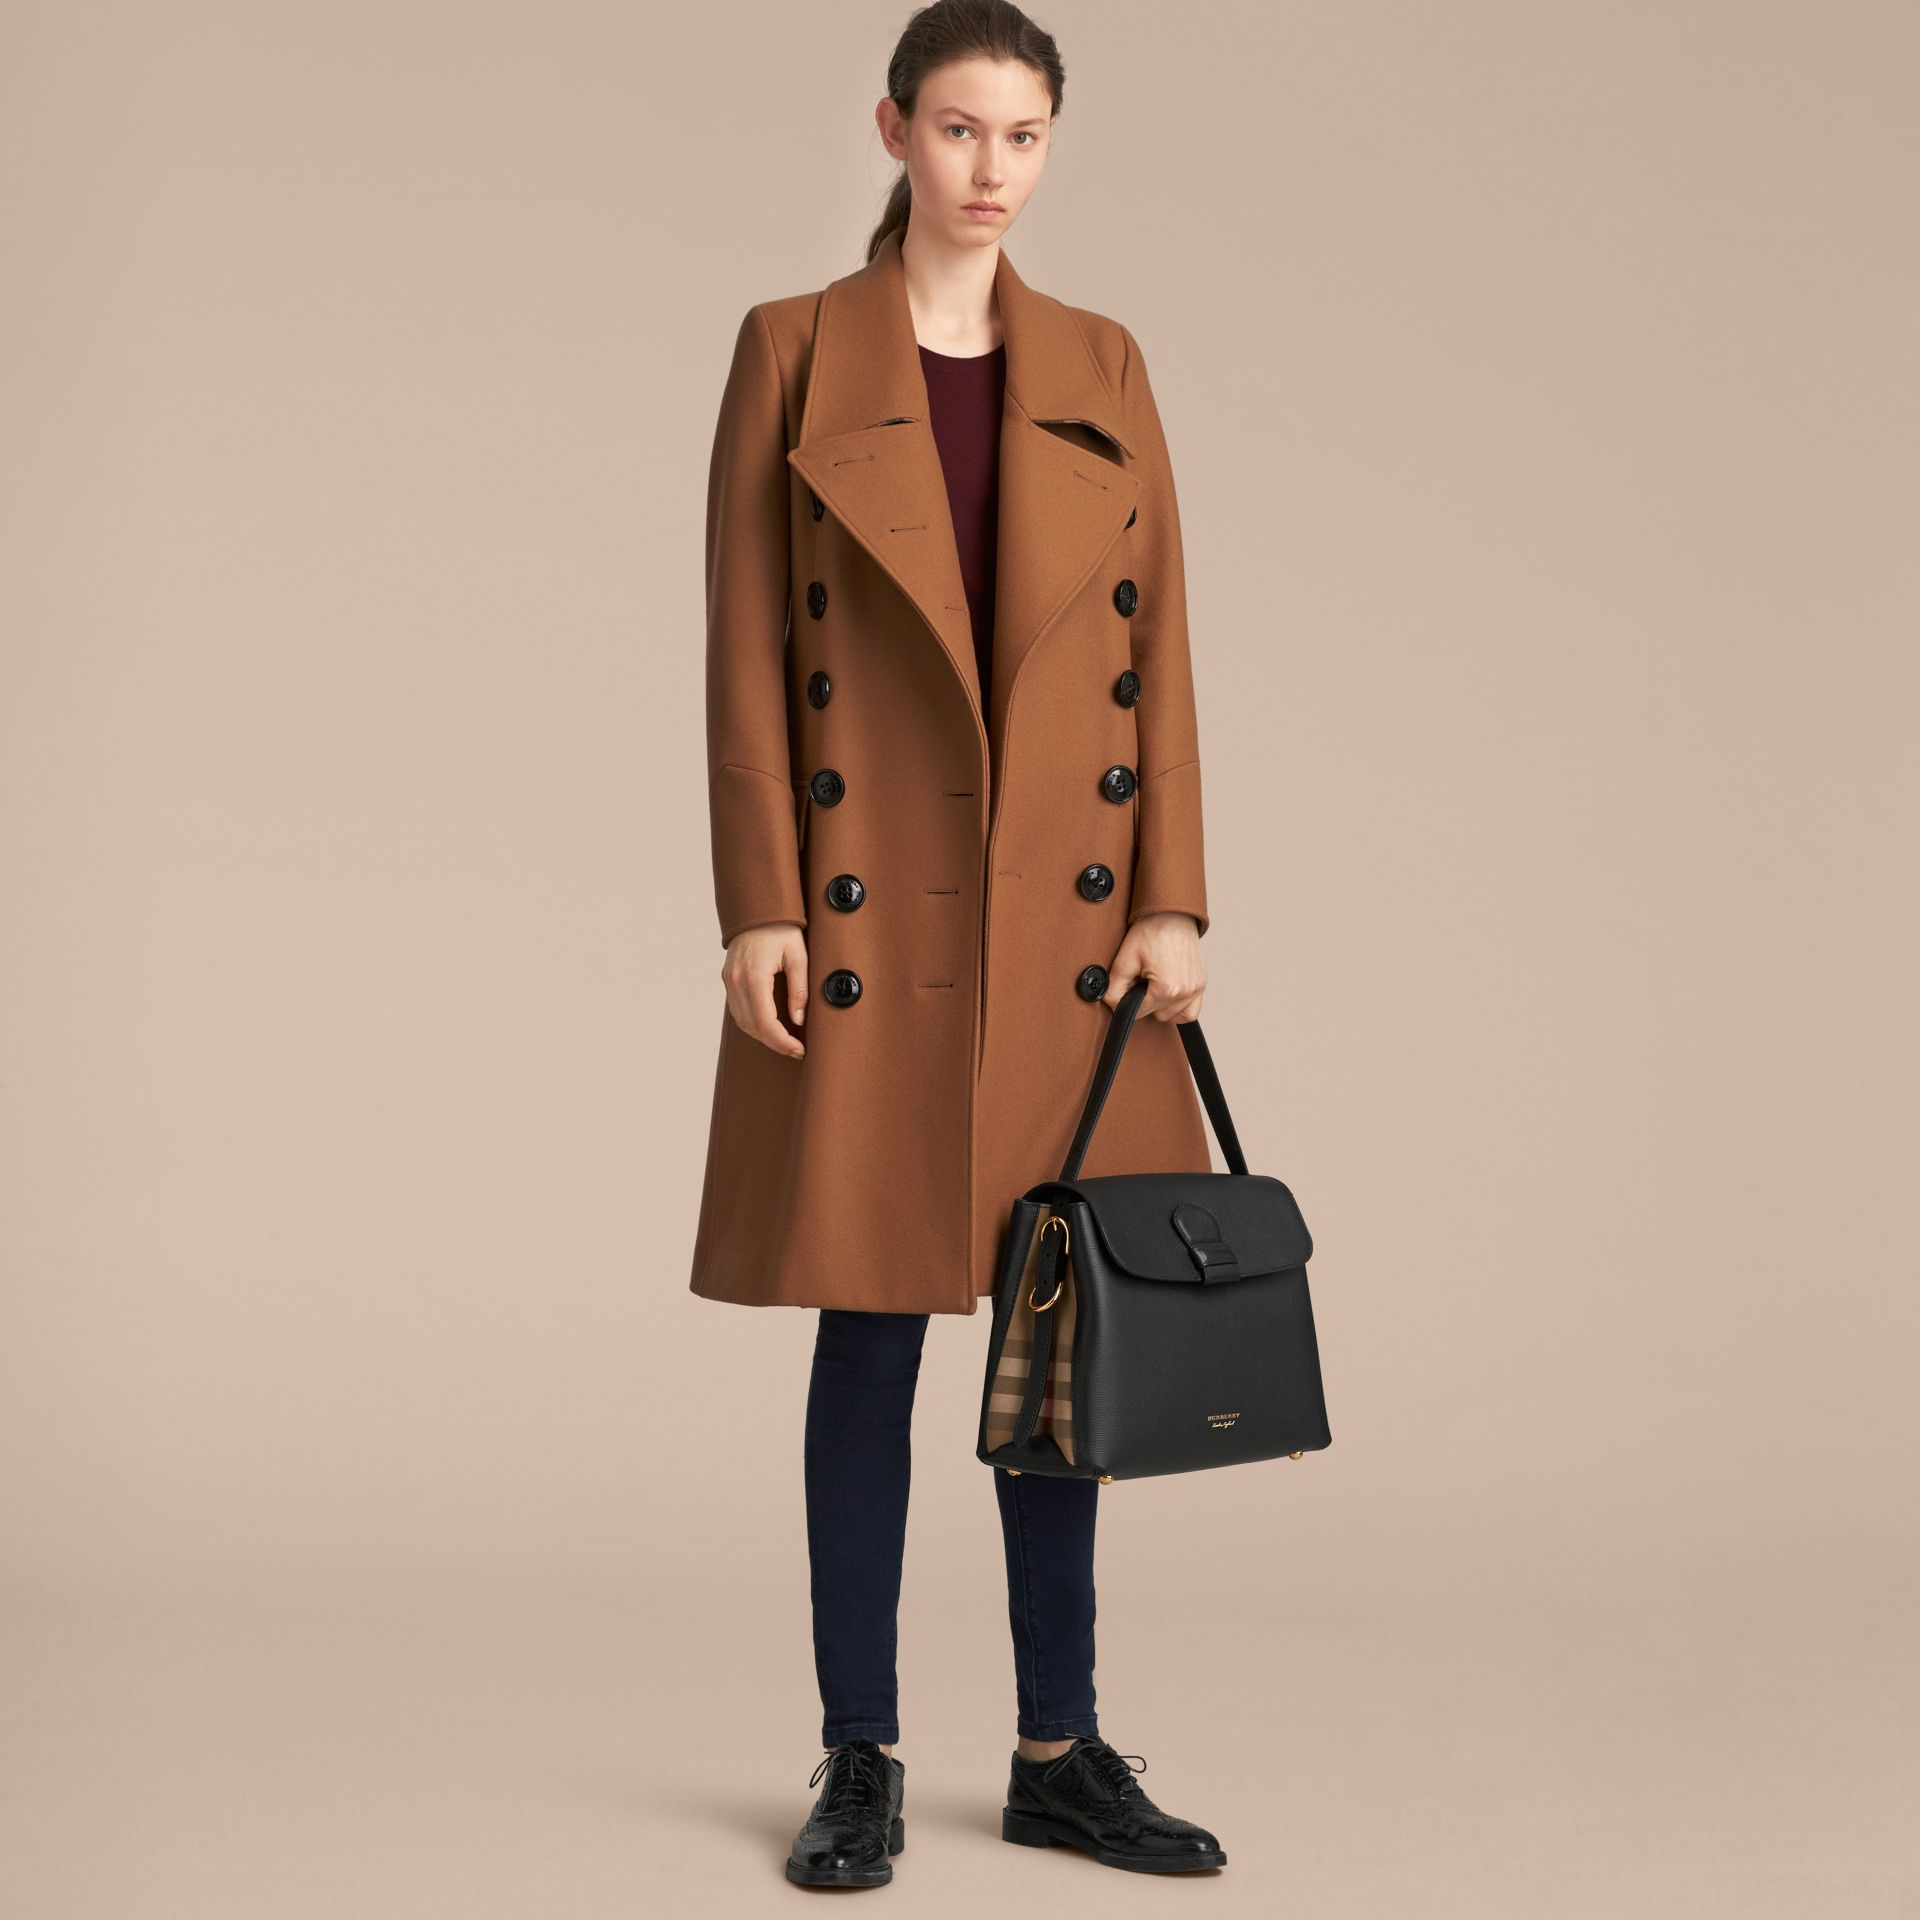 Sac tote medium en cuir grainé et coton House check (Noir) - Femme | Burberry Canada - photo de la galerie 3